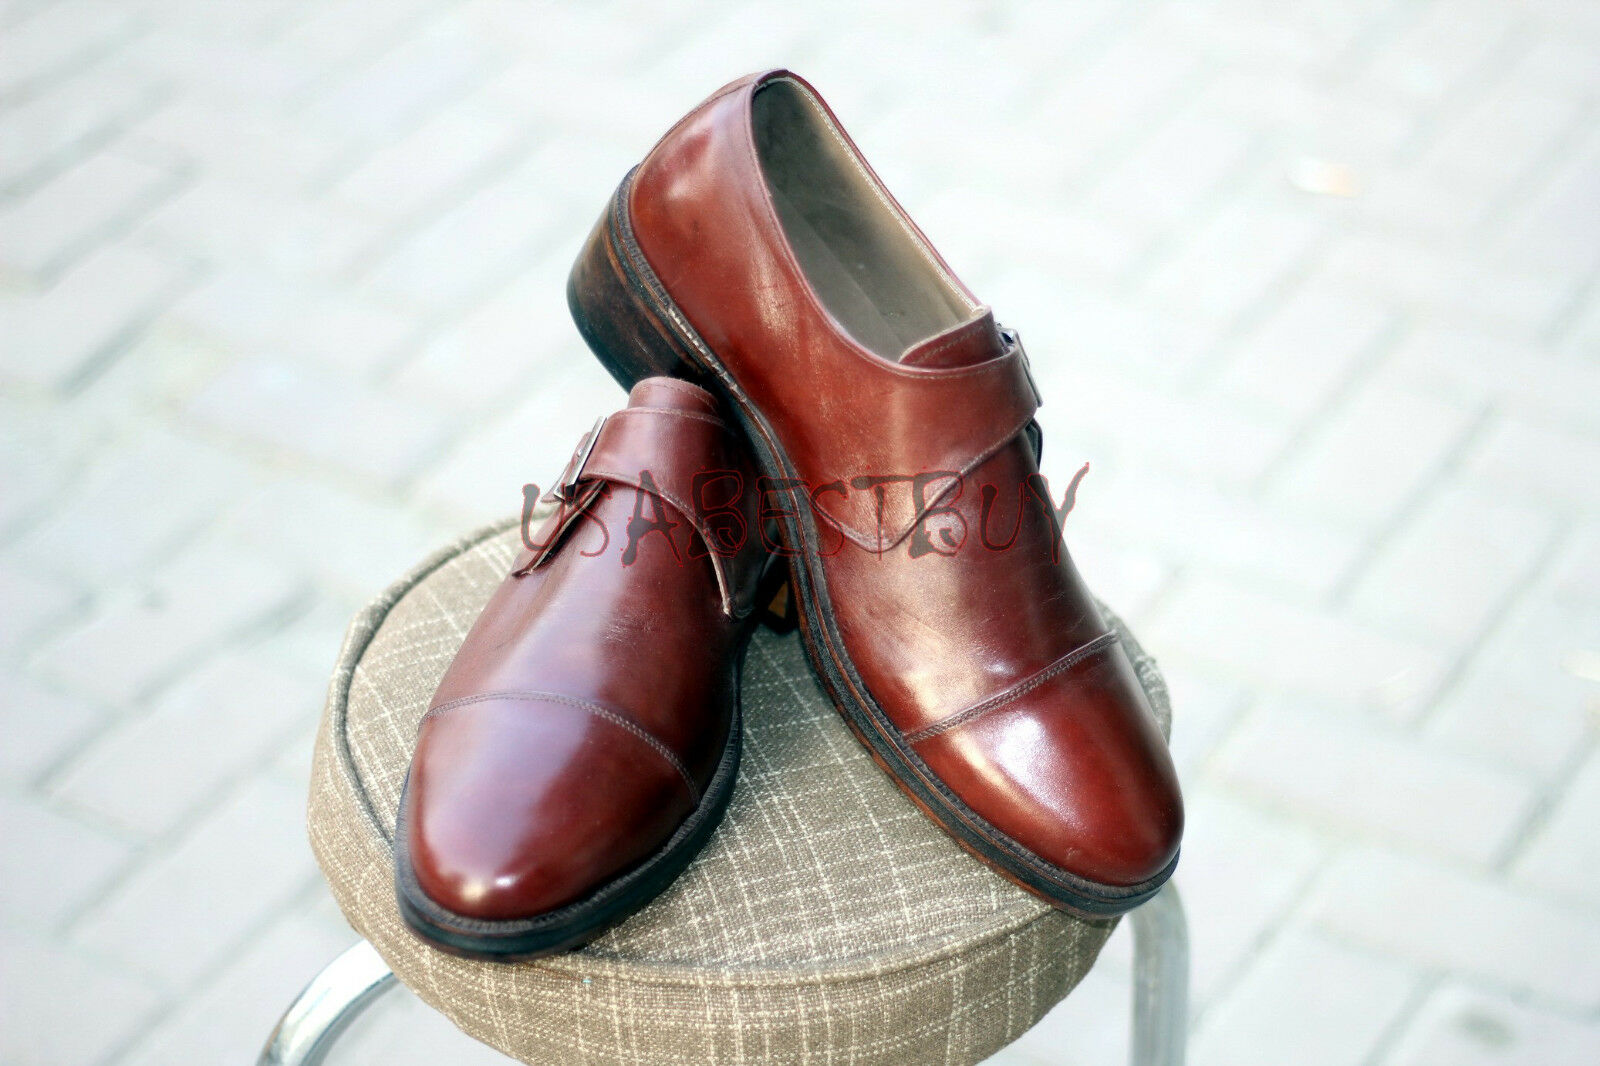 New New New Handmade Mens Single Strap Burgundy Real Leather shoes with 2 inches Heel 6ae48e